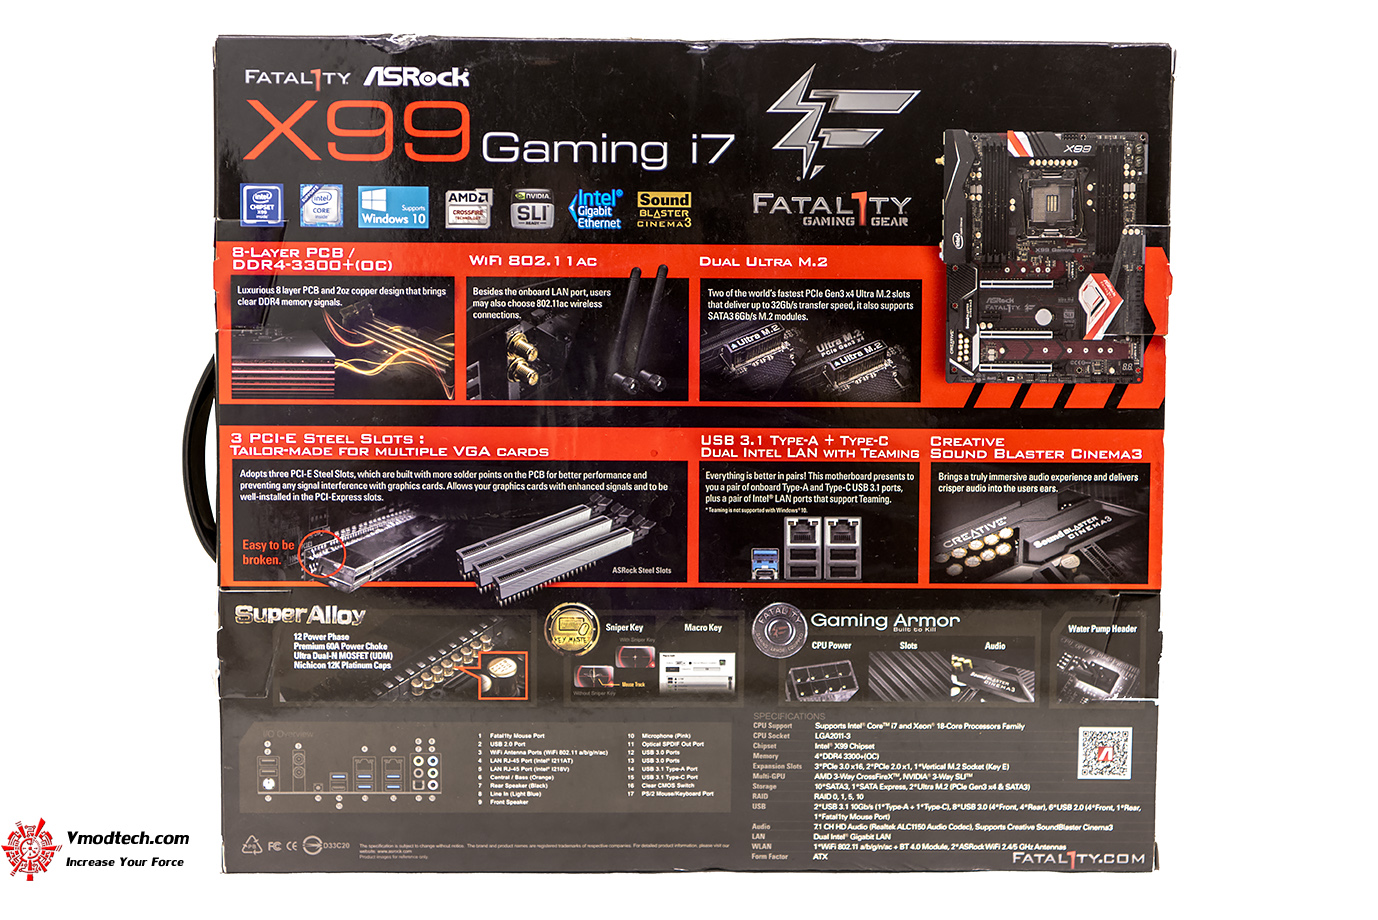 dsc 2042 ASRock Fatal1ty X99 Professional Gaming i7 Motherboard Review